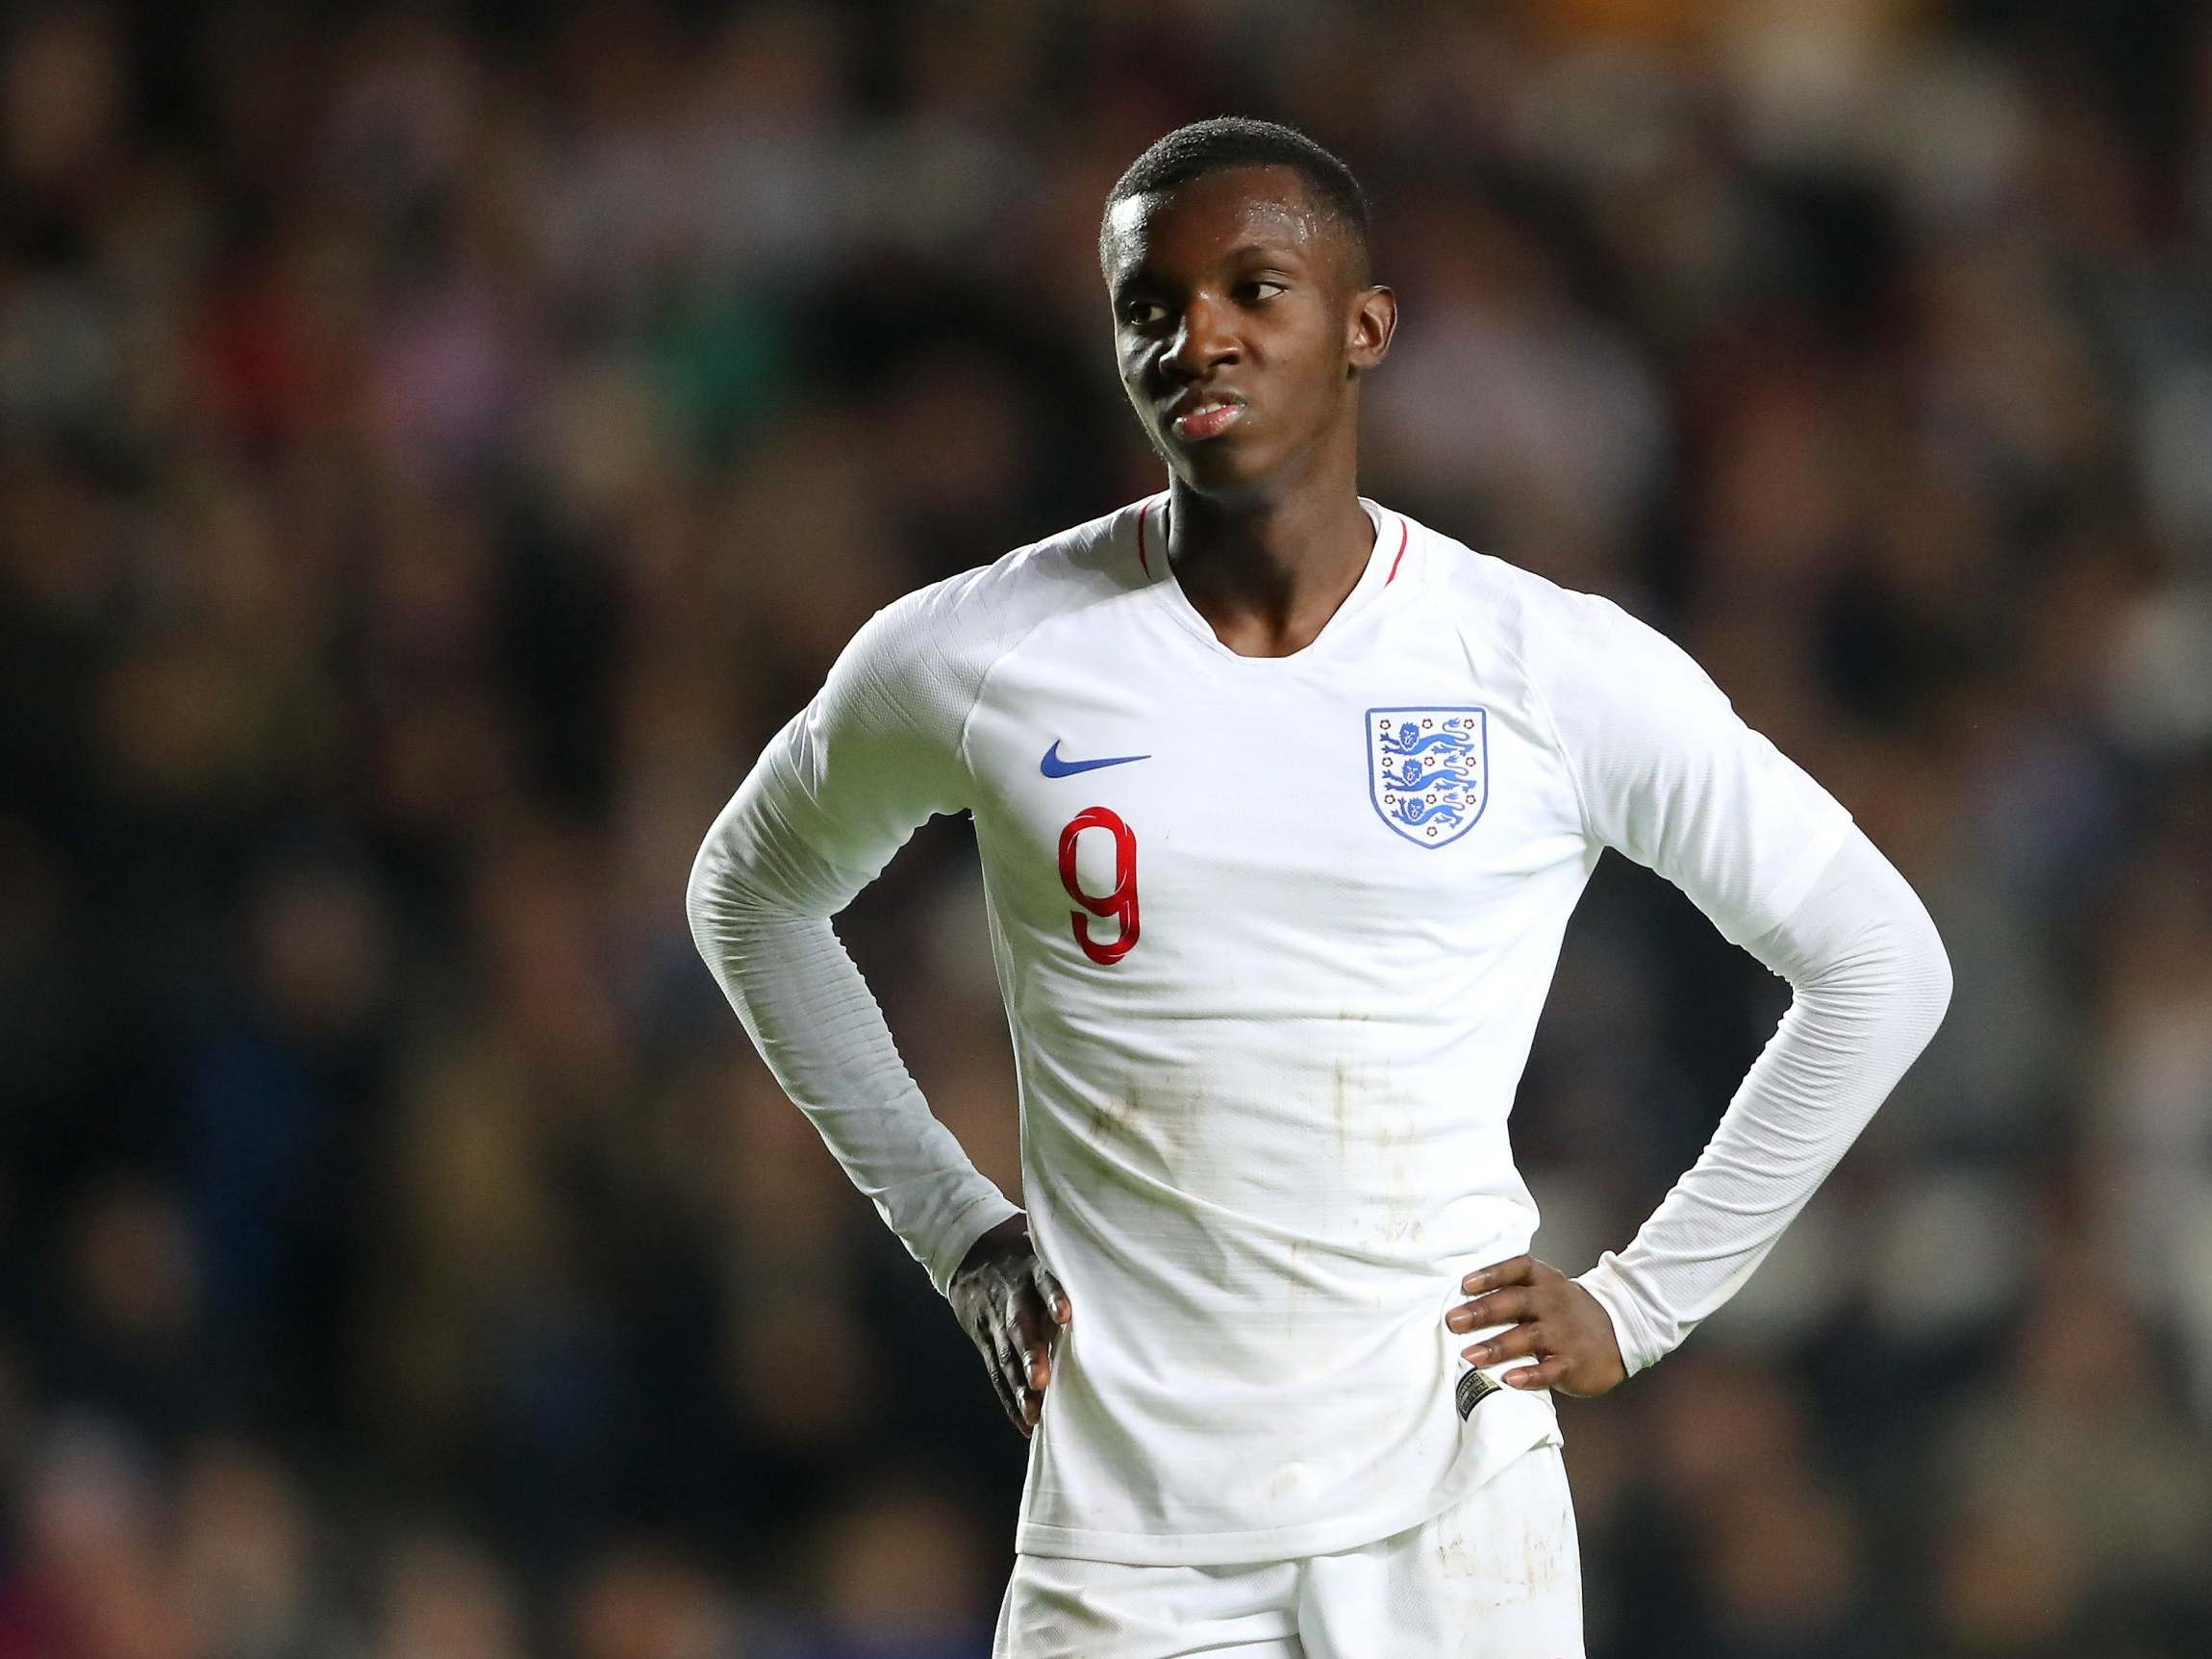 Arsenal news: Eddie Nketiah hopes England hat-trick eases 'disappointment' over lack of minutes at Leeds